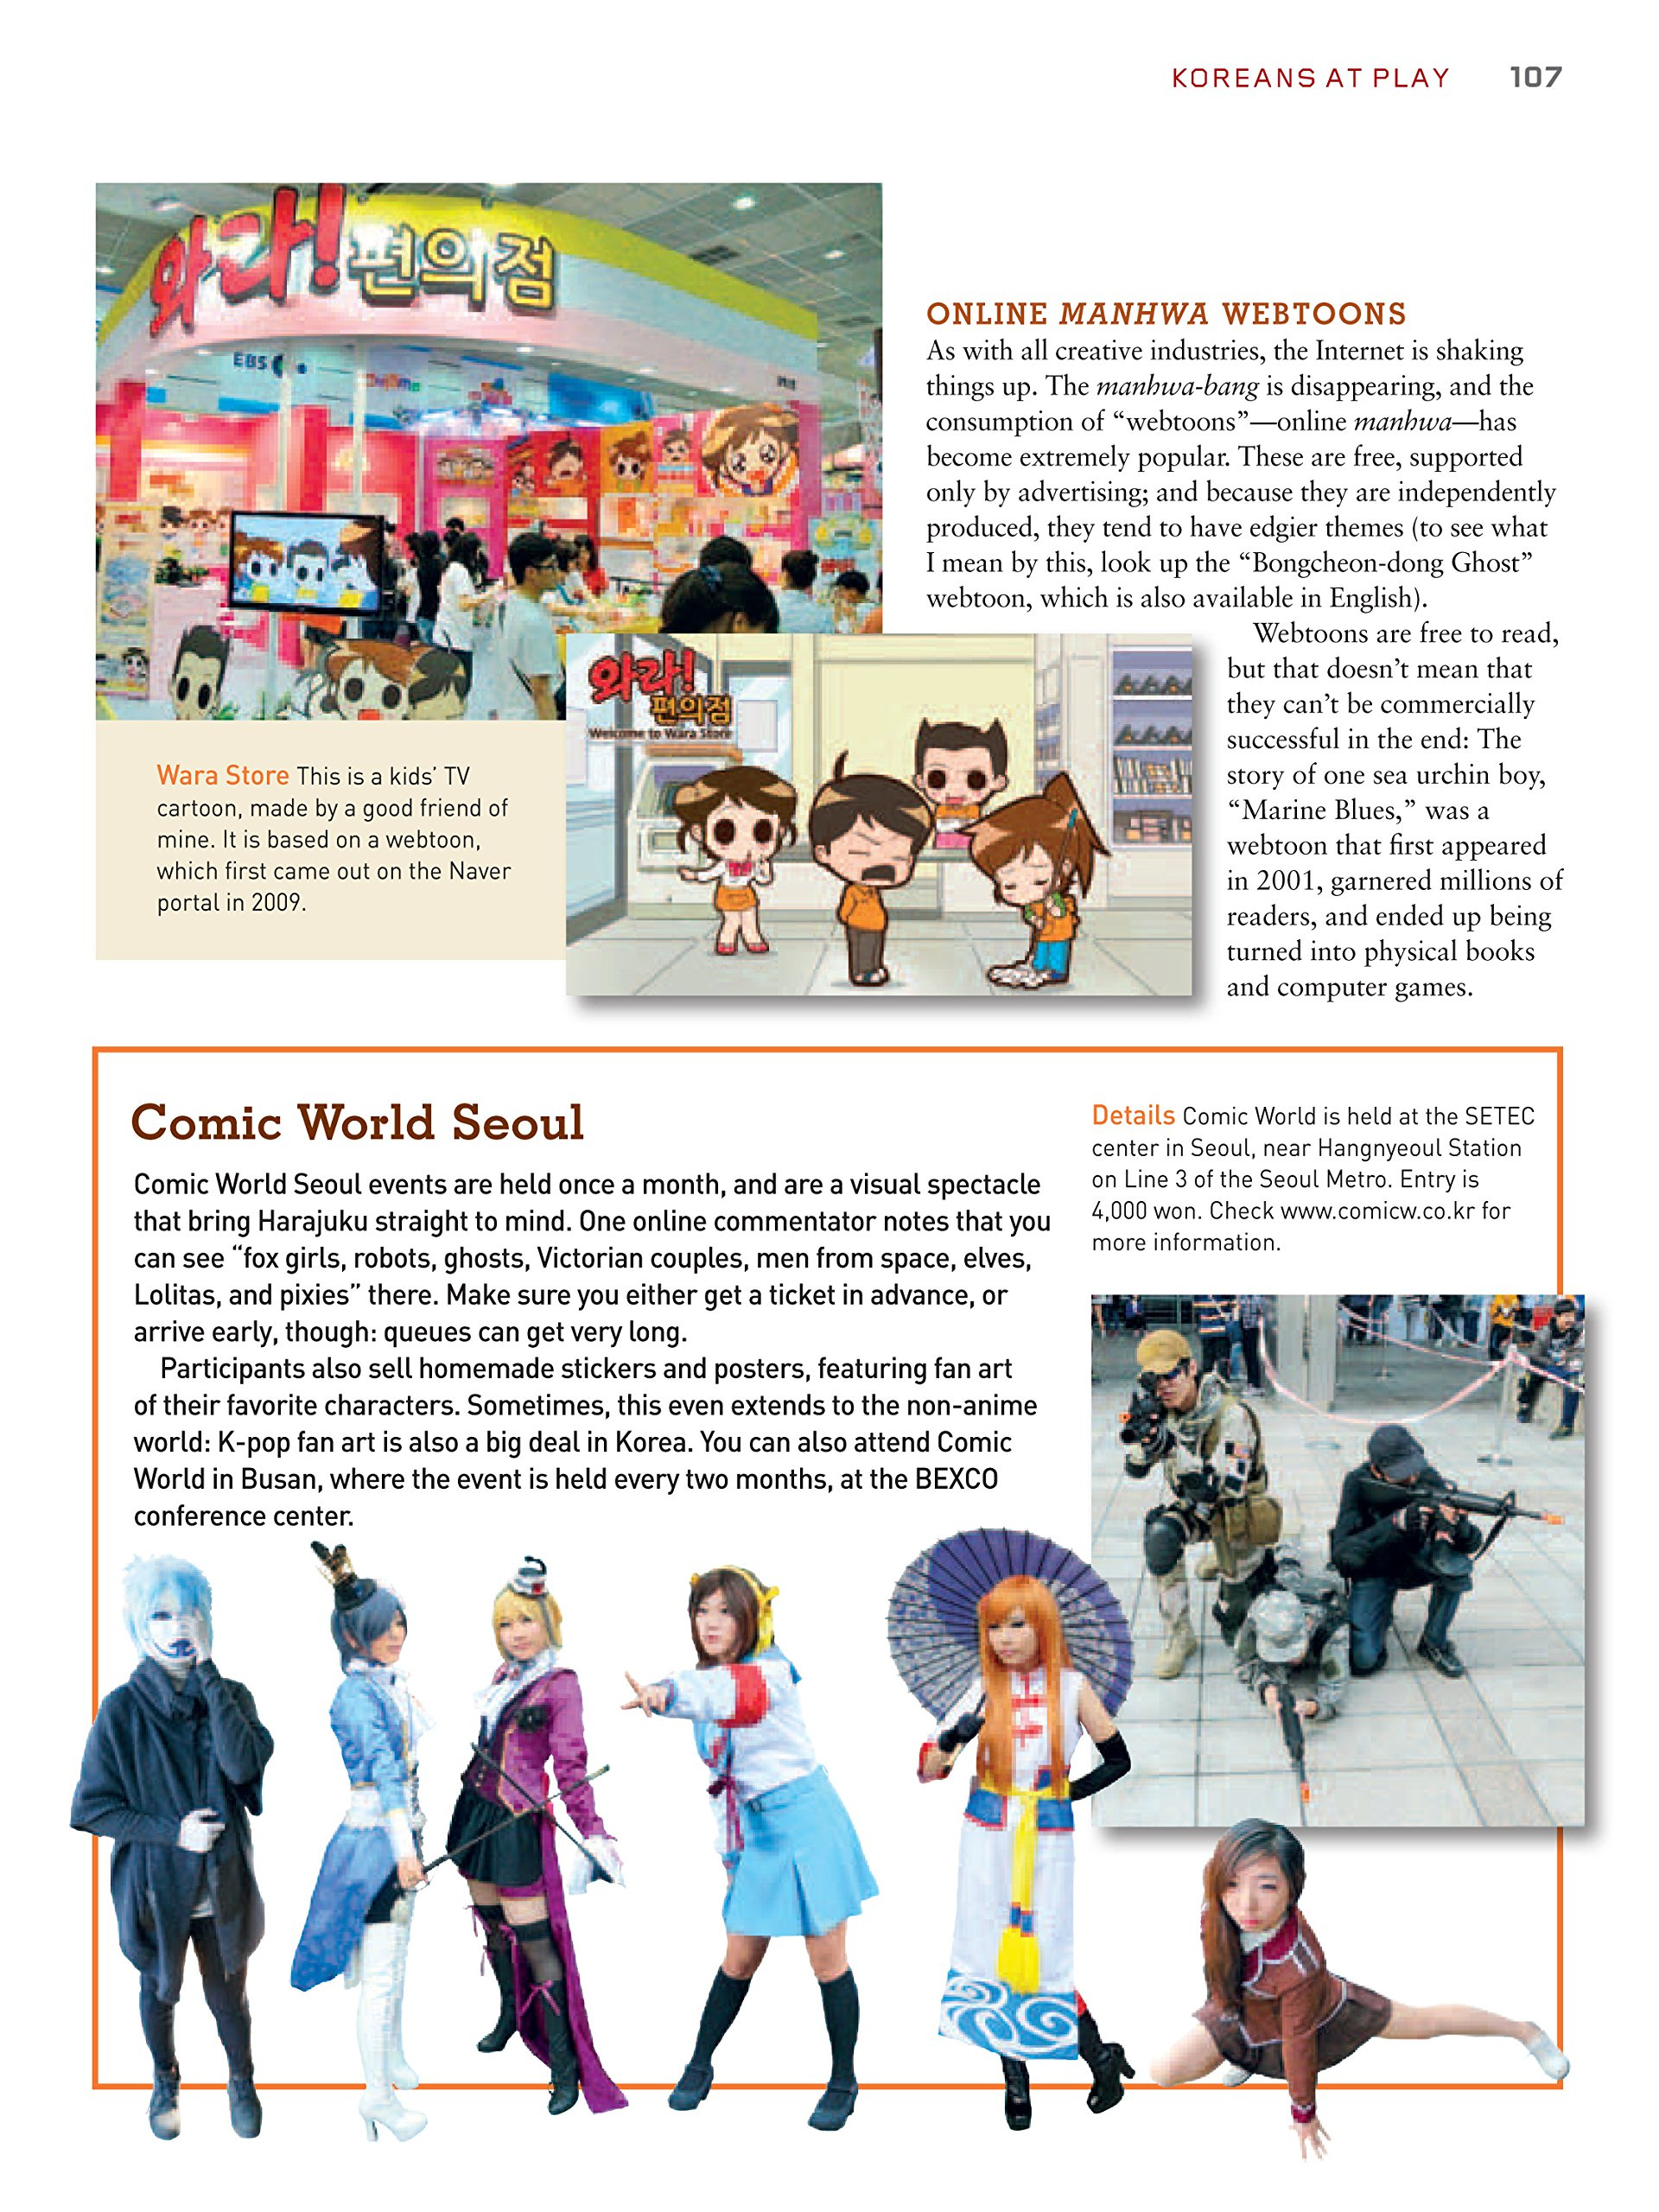 A geek in korea discovering asians new kingdom of cool daniel a geek in korea discovering asians new kingdom of cool daniel tudor 8601422140262 amazon books biocorpaavc Image collections